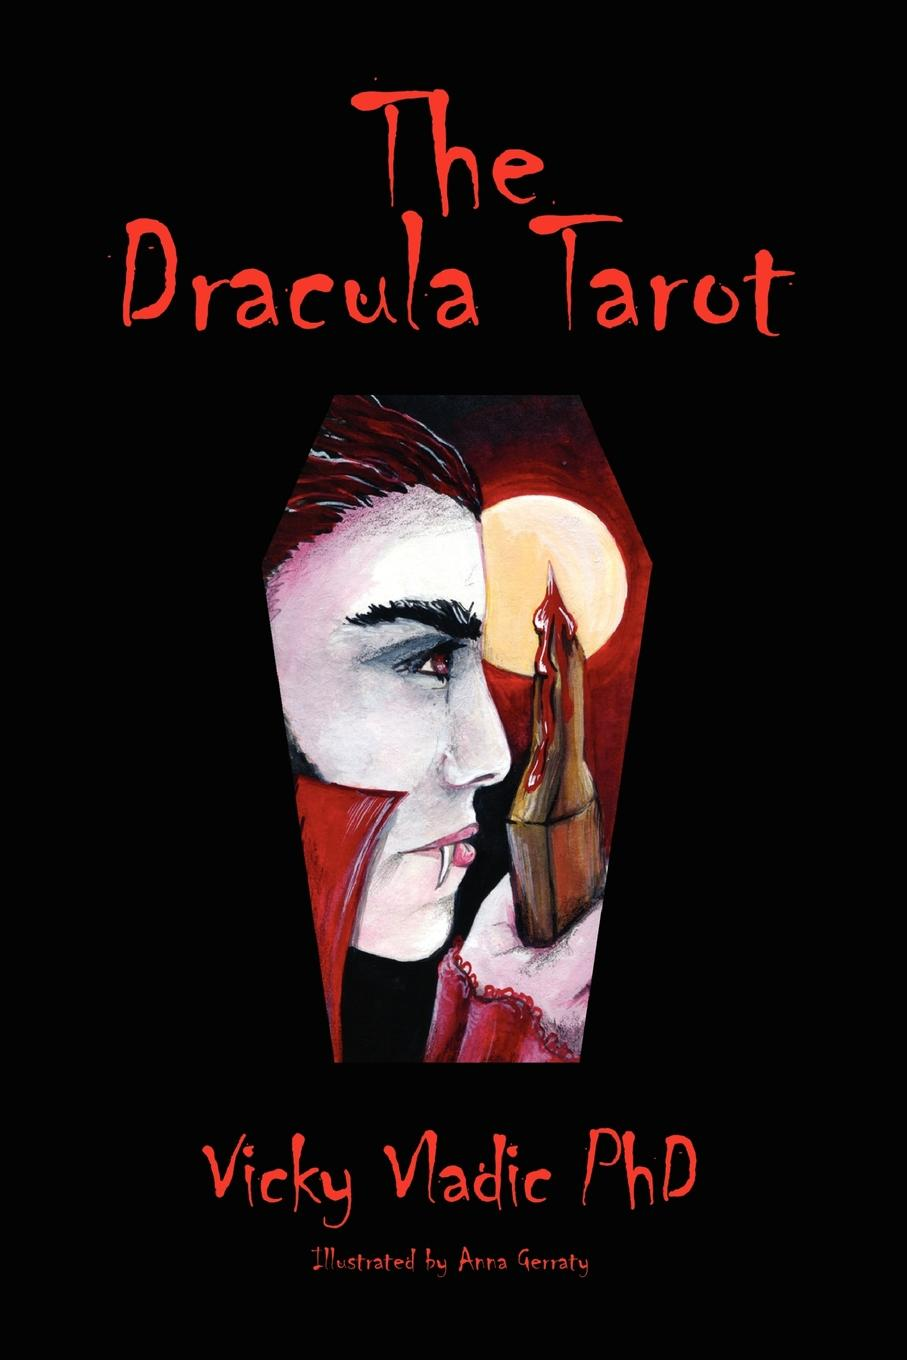 Vicky Vladic The Dracula Tarot rc drone helicopter tarot 25mm metal multicopter motor mount quadrocopter kit diy tarot810 960 t18 tarot 25mm carbon motor mount